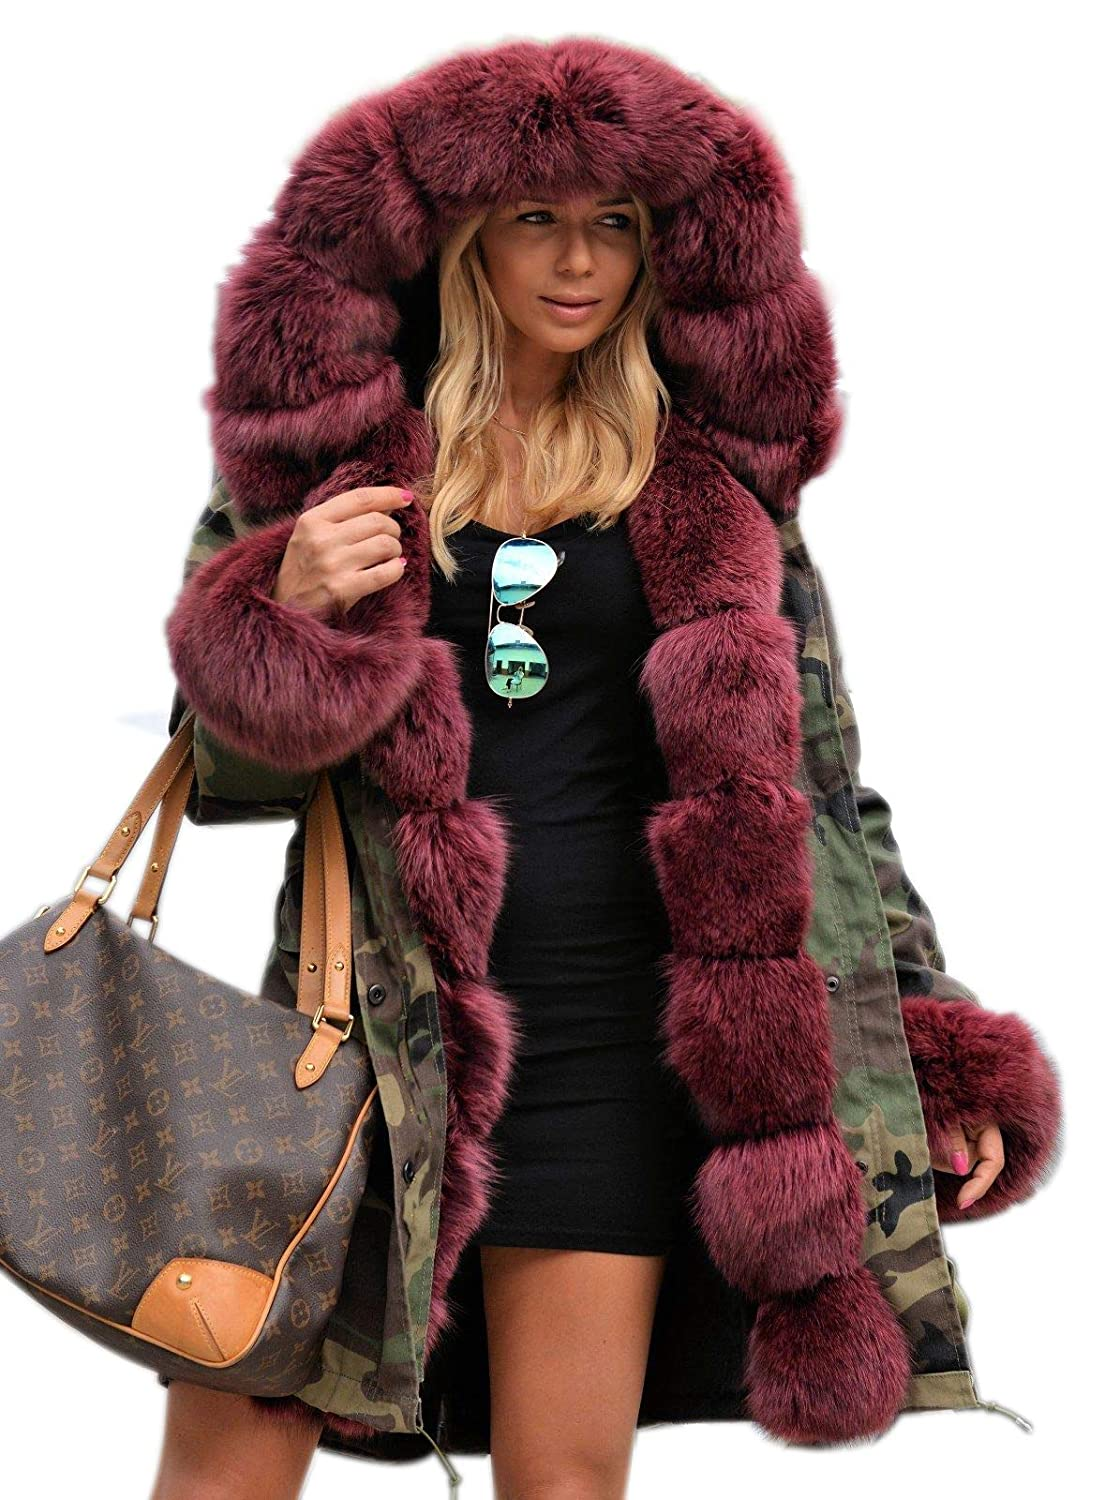 Aox Fashion Winter Coat for Women Red Faux Fur Camo Hoodie Pullover Jacket Parka Outwear Aox 201720